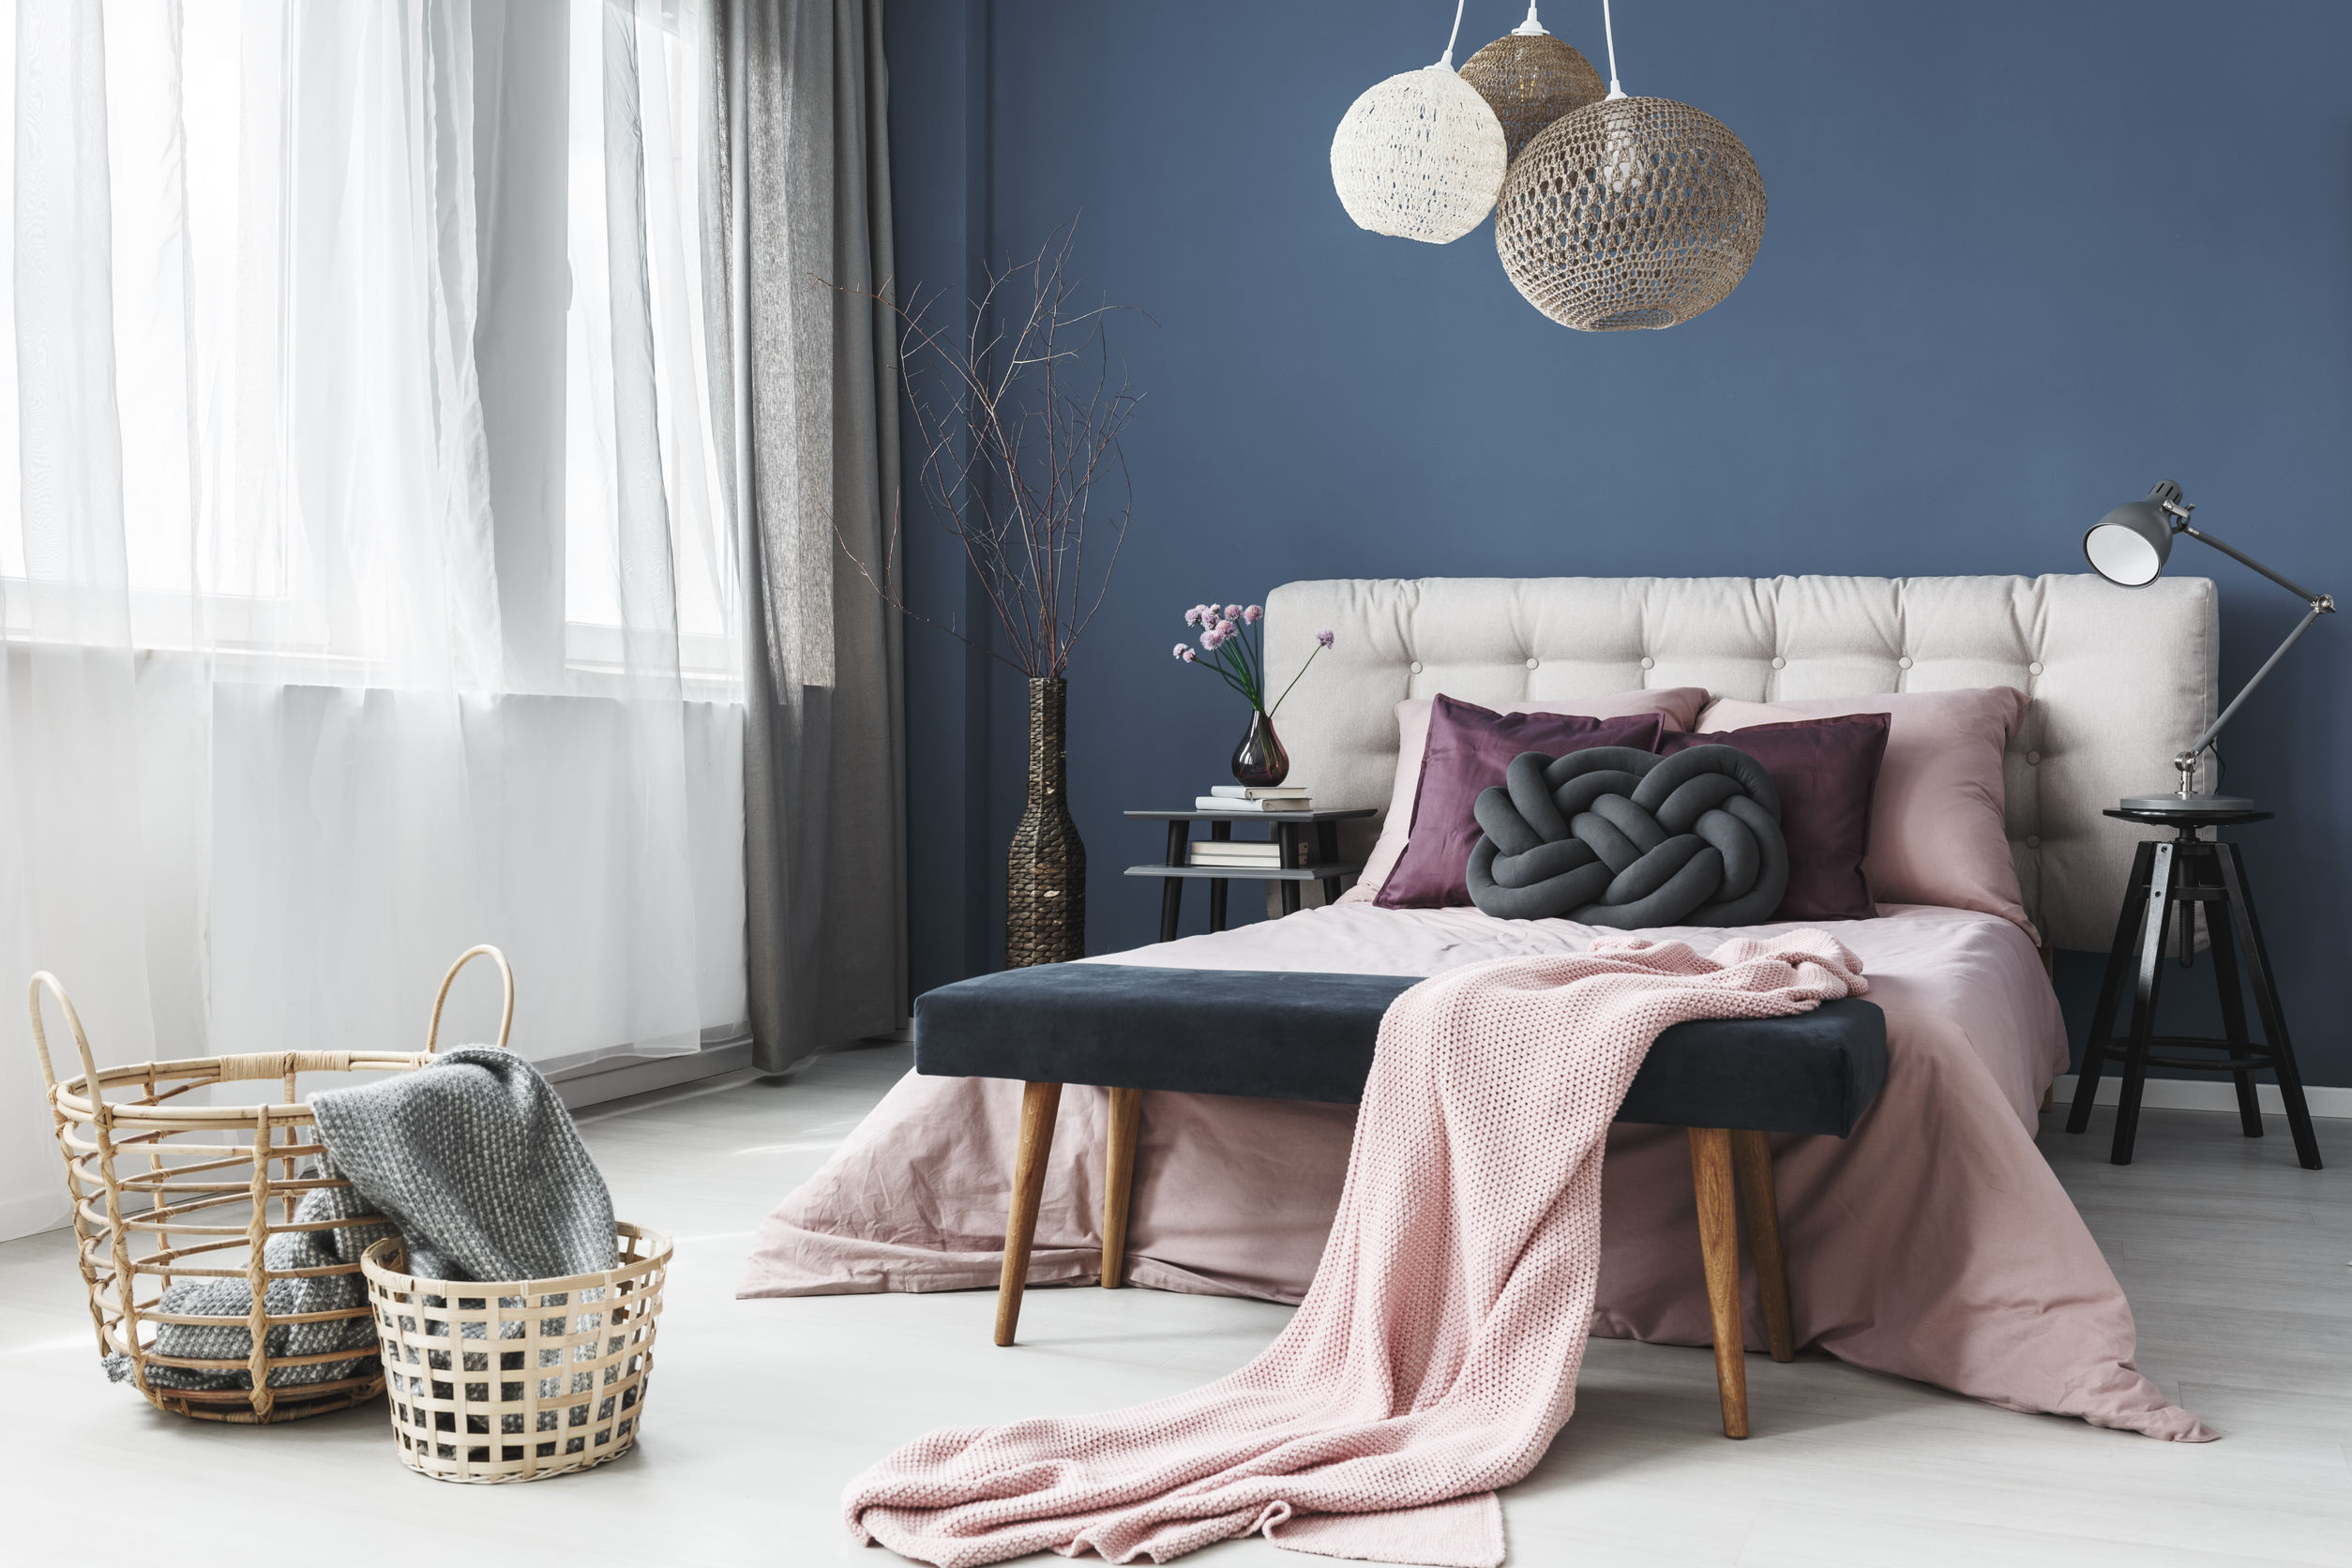 pastel colour room with king-sized bed and a pendant lamp